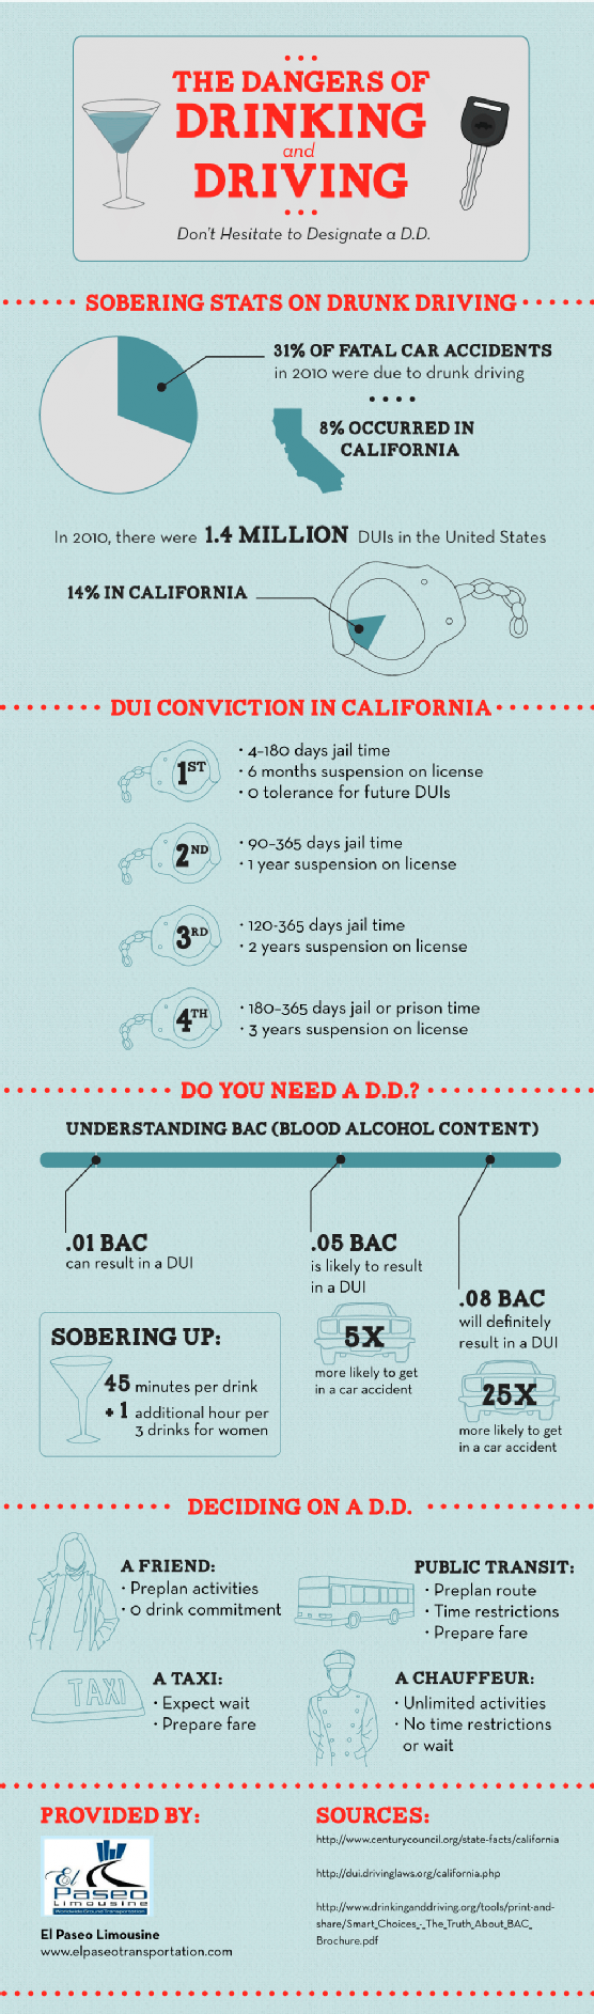 The Dangers of Drinking and Driving: Don't Hesitate to Designate a D.D. Infographic